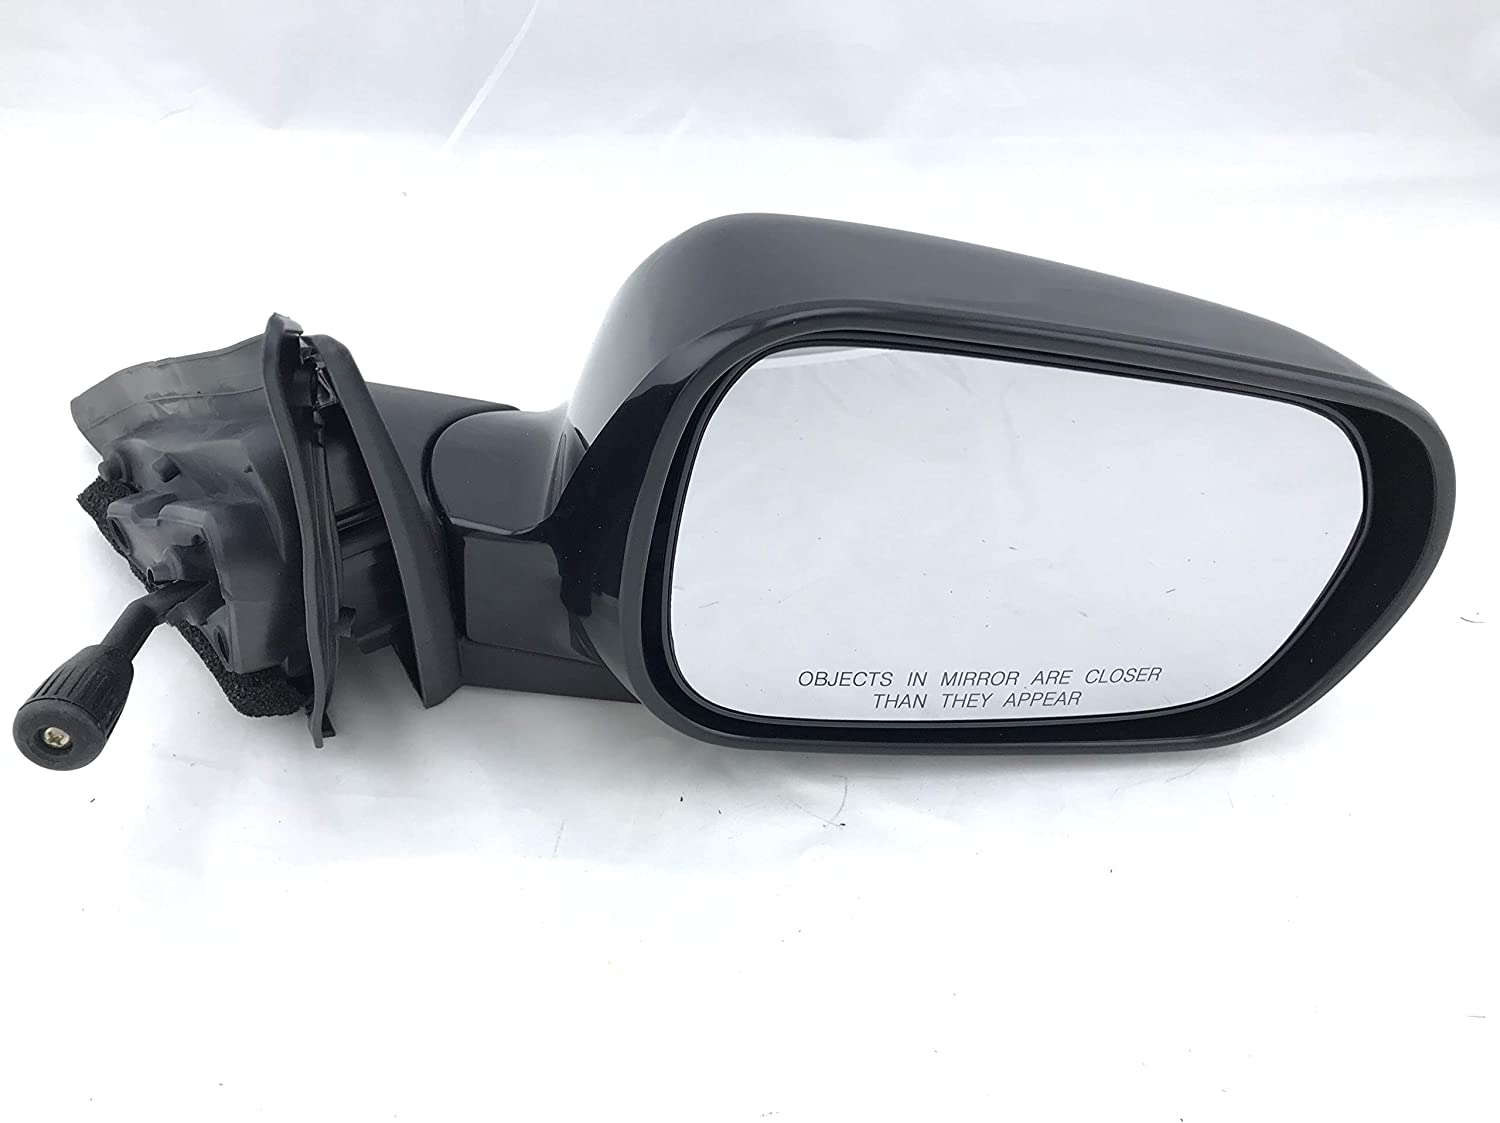 OE:76200-S84-L01 Passenger Side Right Rear View Mirror Replacement for Honda Accor SDN 98-02 HO1321136 Parts Link #